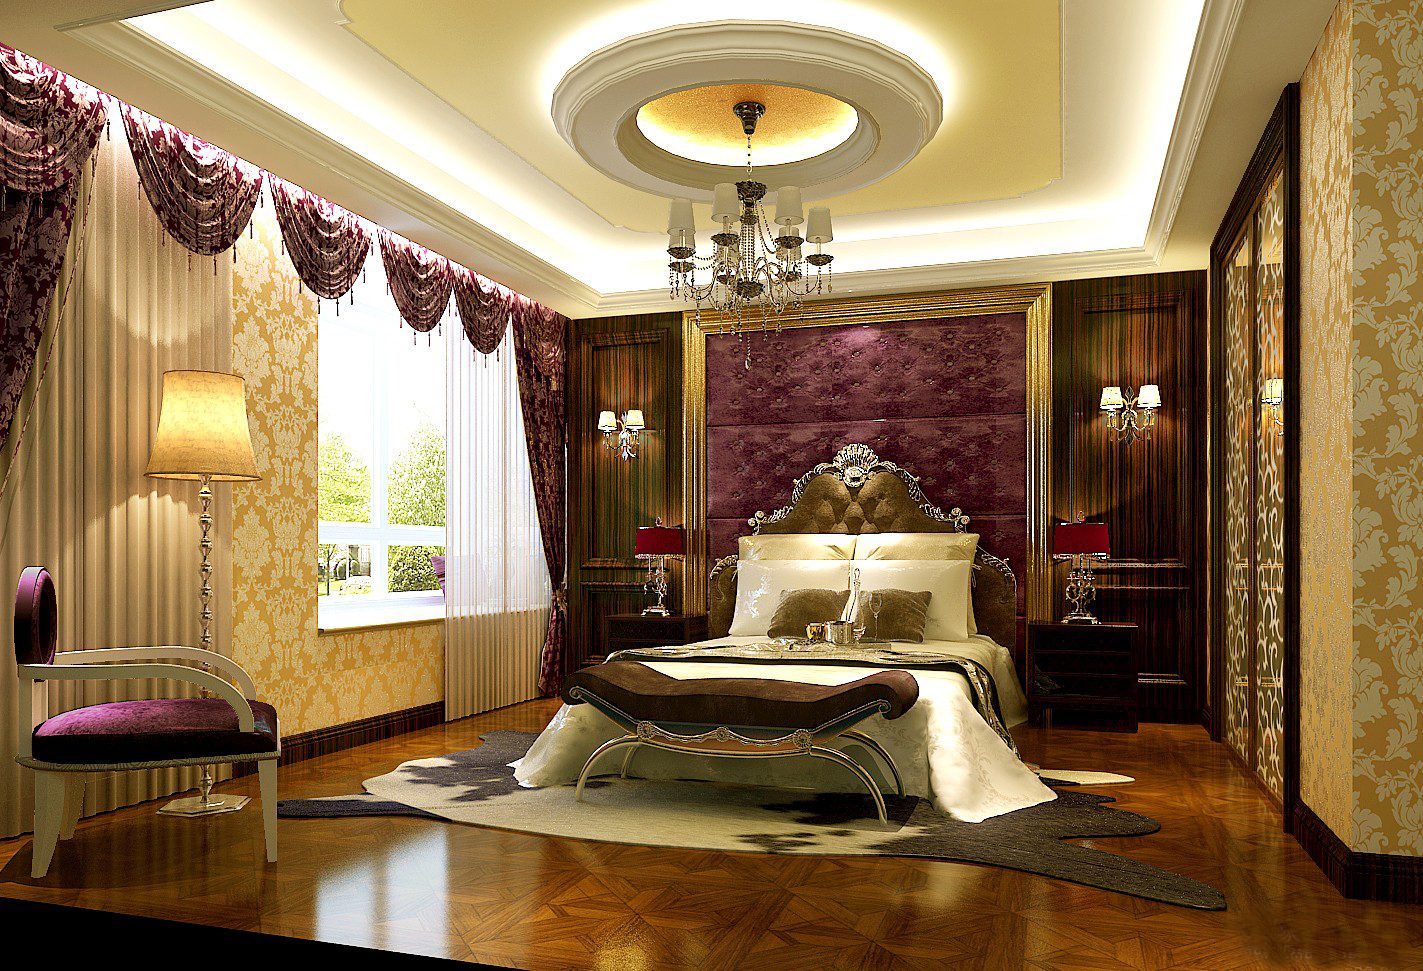 ROYAL POP FALSE CEILING DESIGN FOR BEDROOM